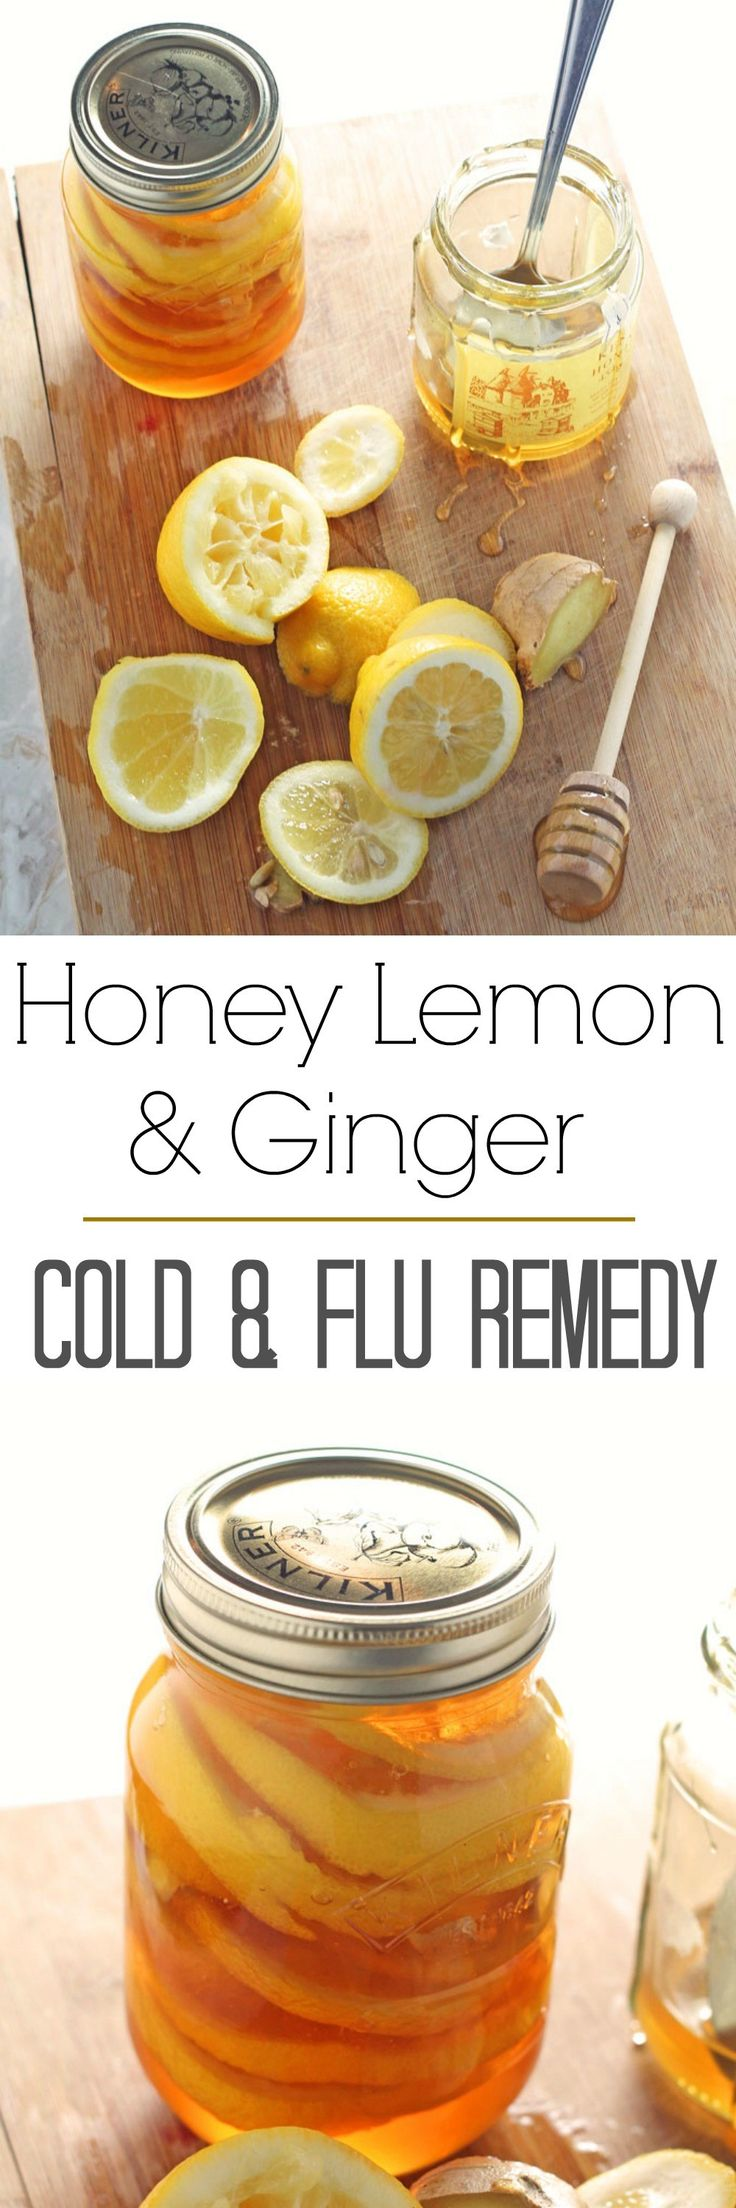 A simple homemade cold and flu remedy of Honey Lemon